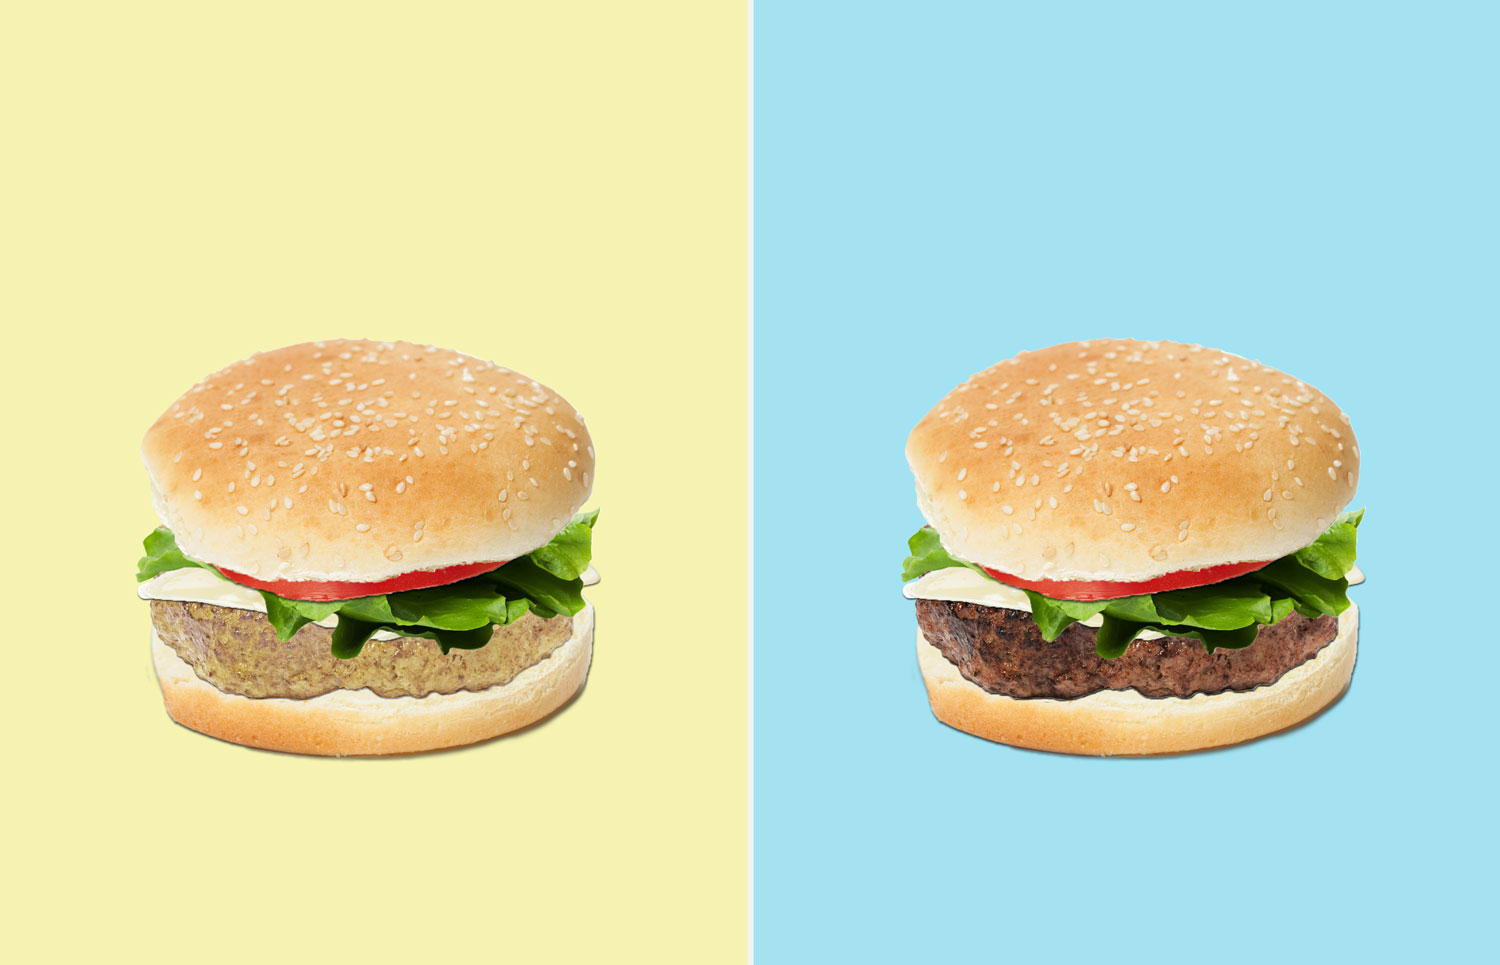 Which is better for you: A turkey burger or a sirloin burger?